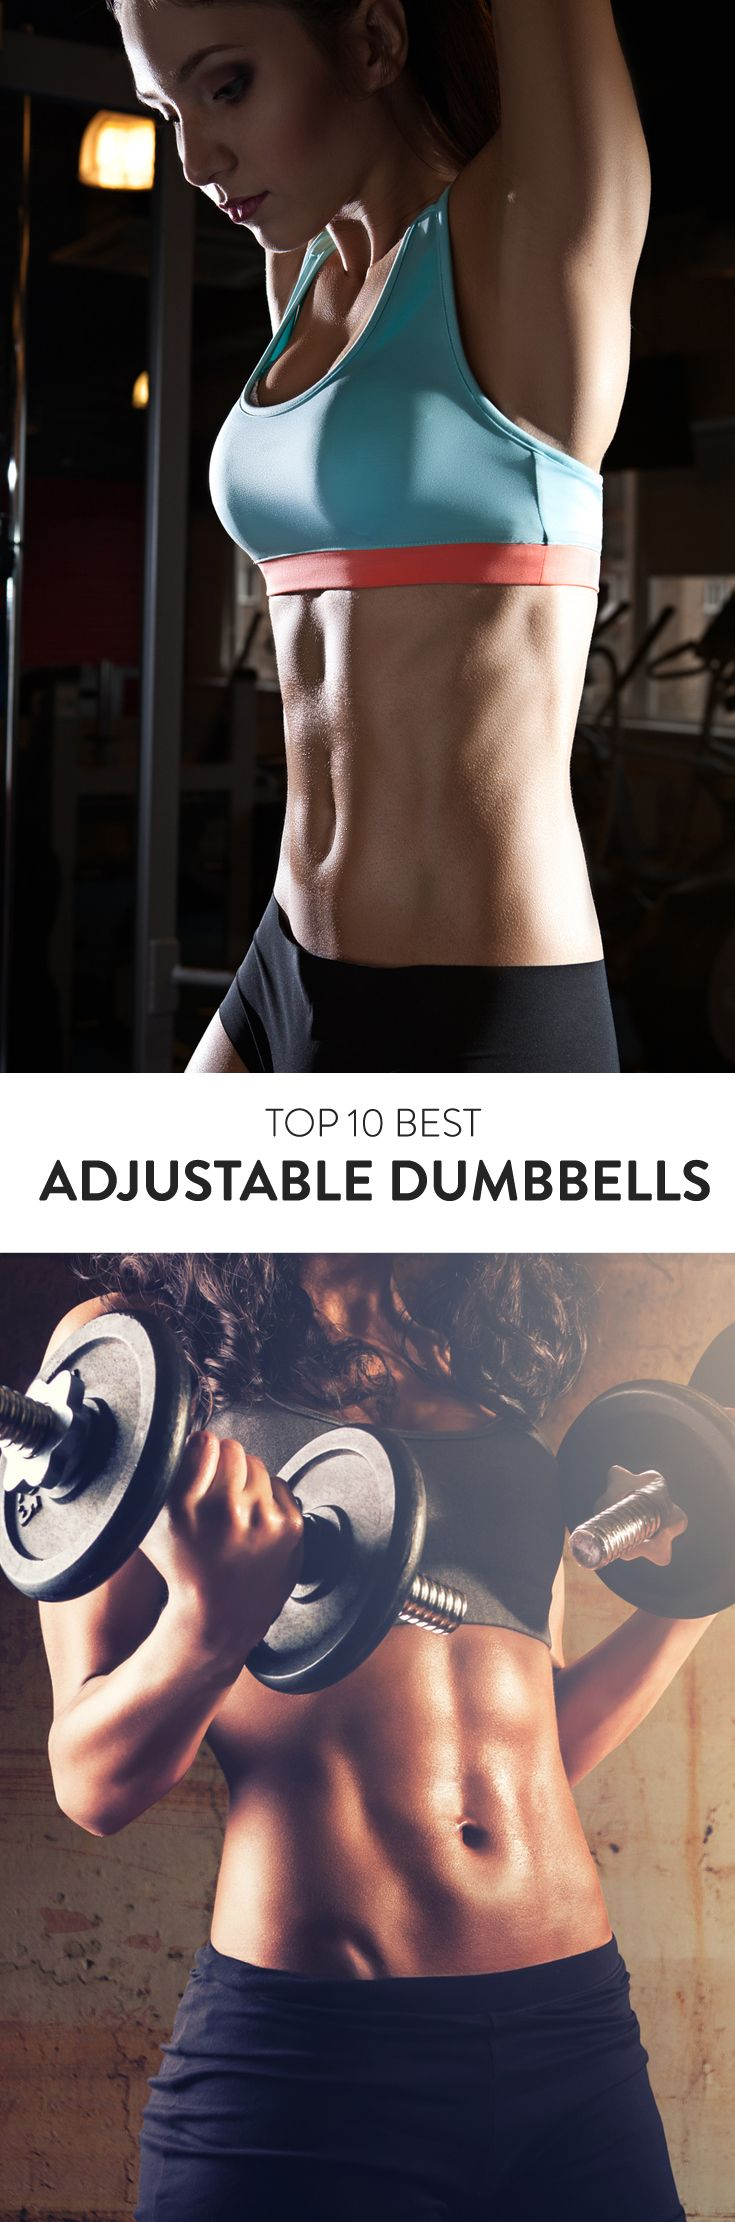 Tone your arms in or out of the gym with these Top 10 Best Adjustable Dumbbell